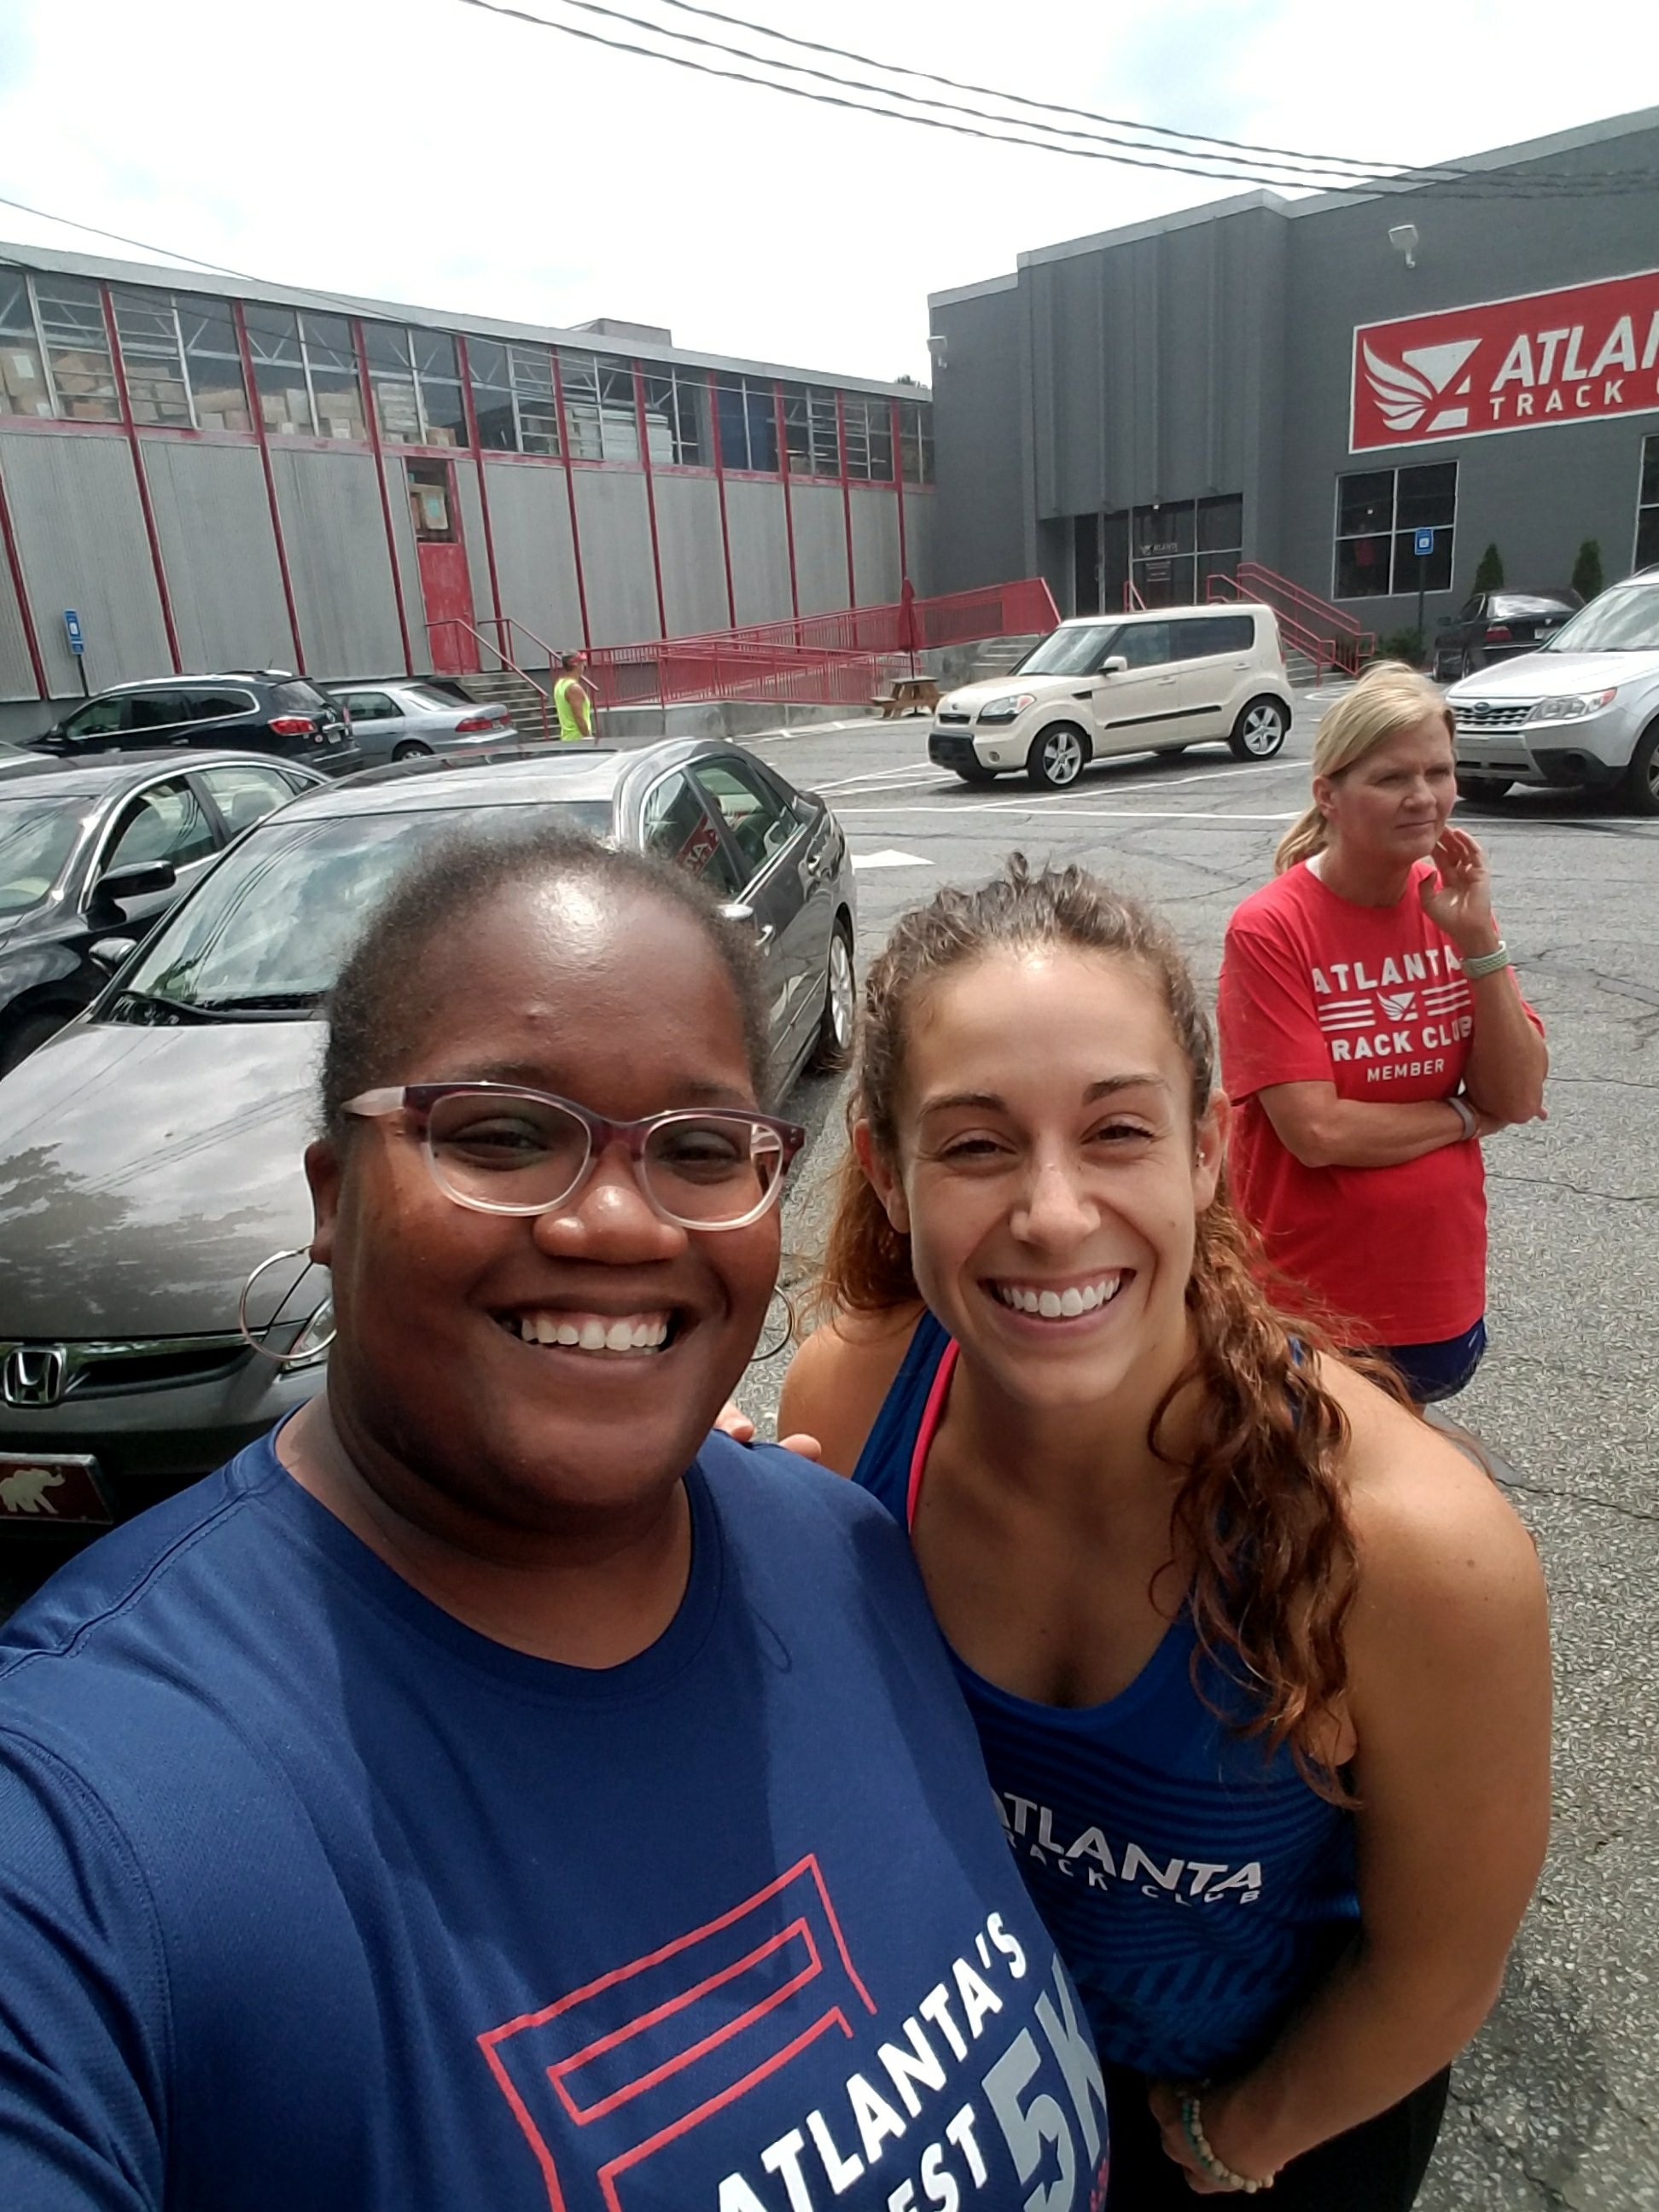 natalie and tj global running day 20171094504466.